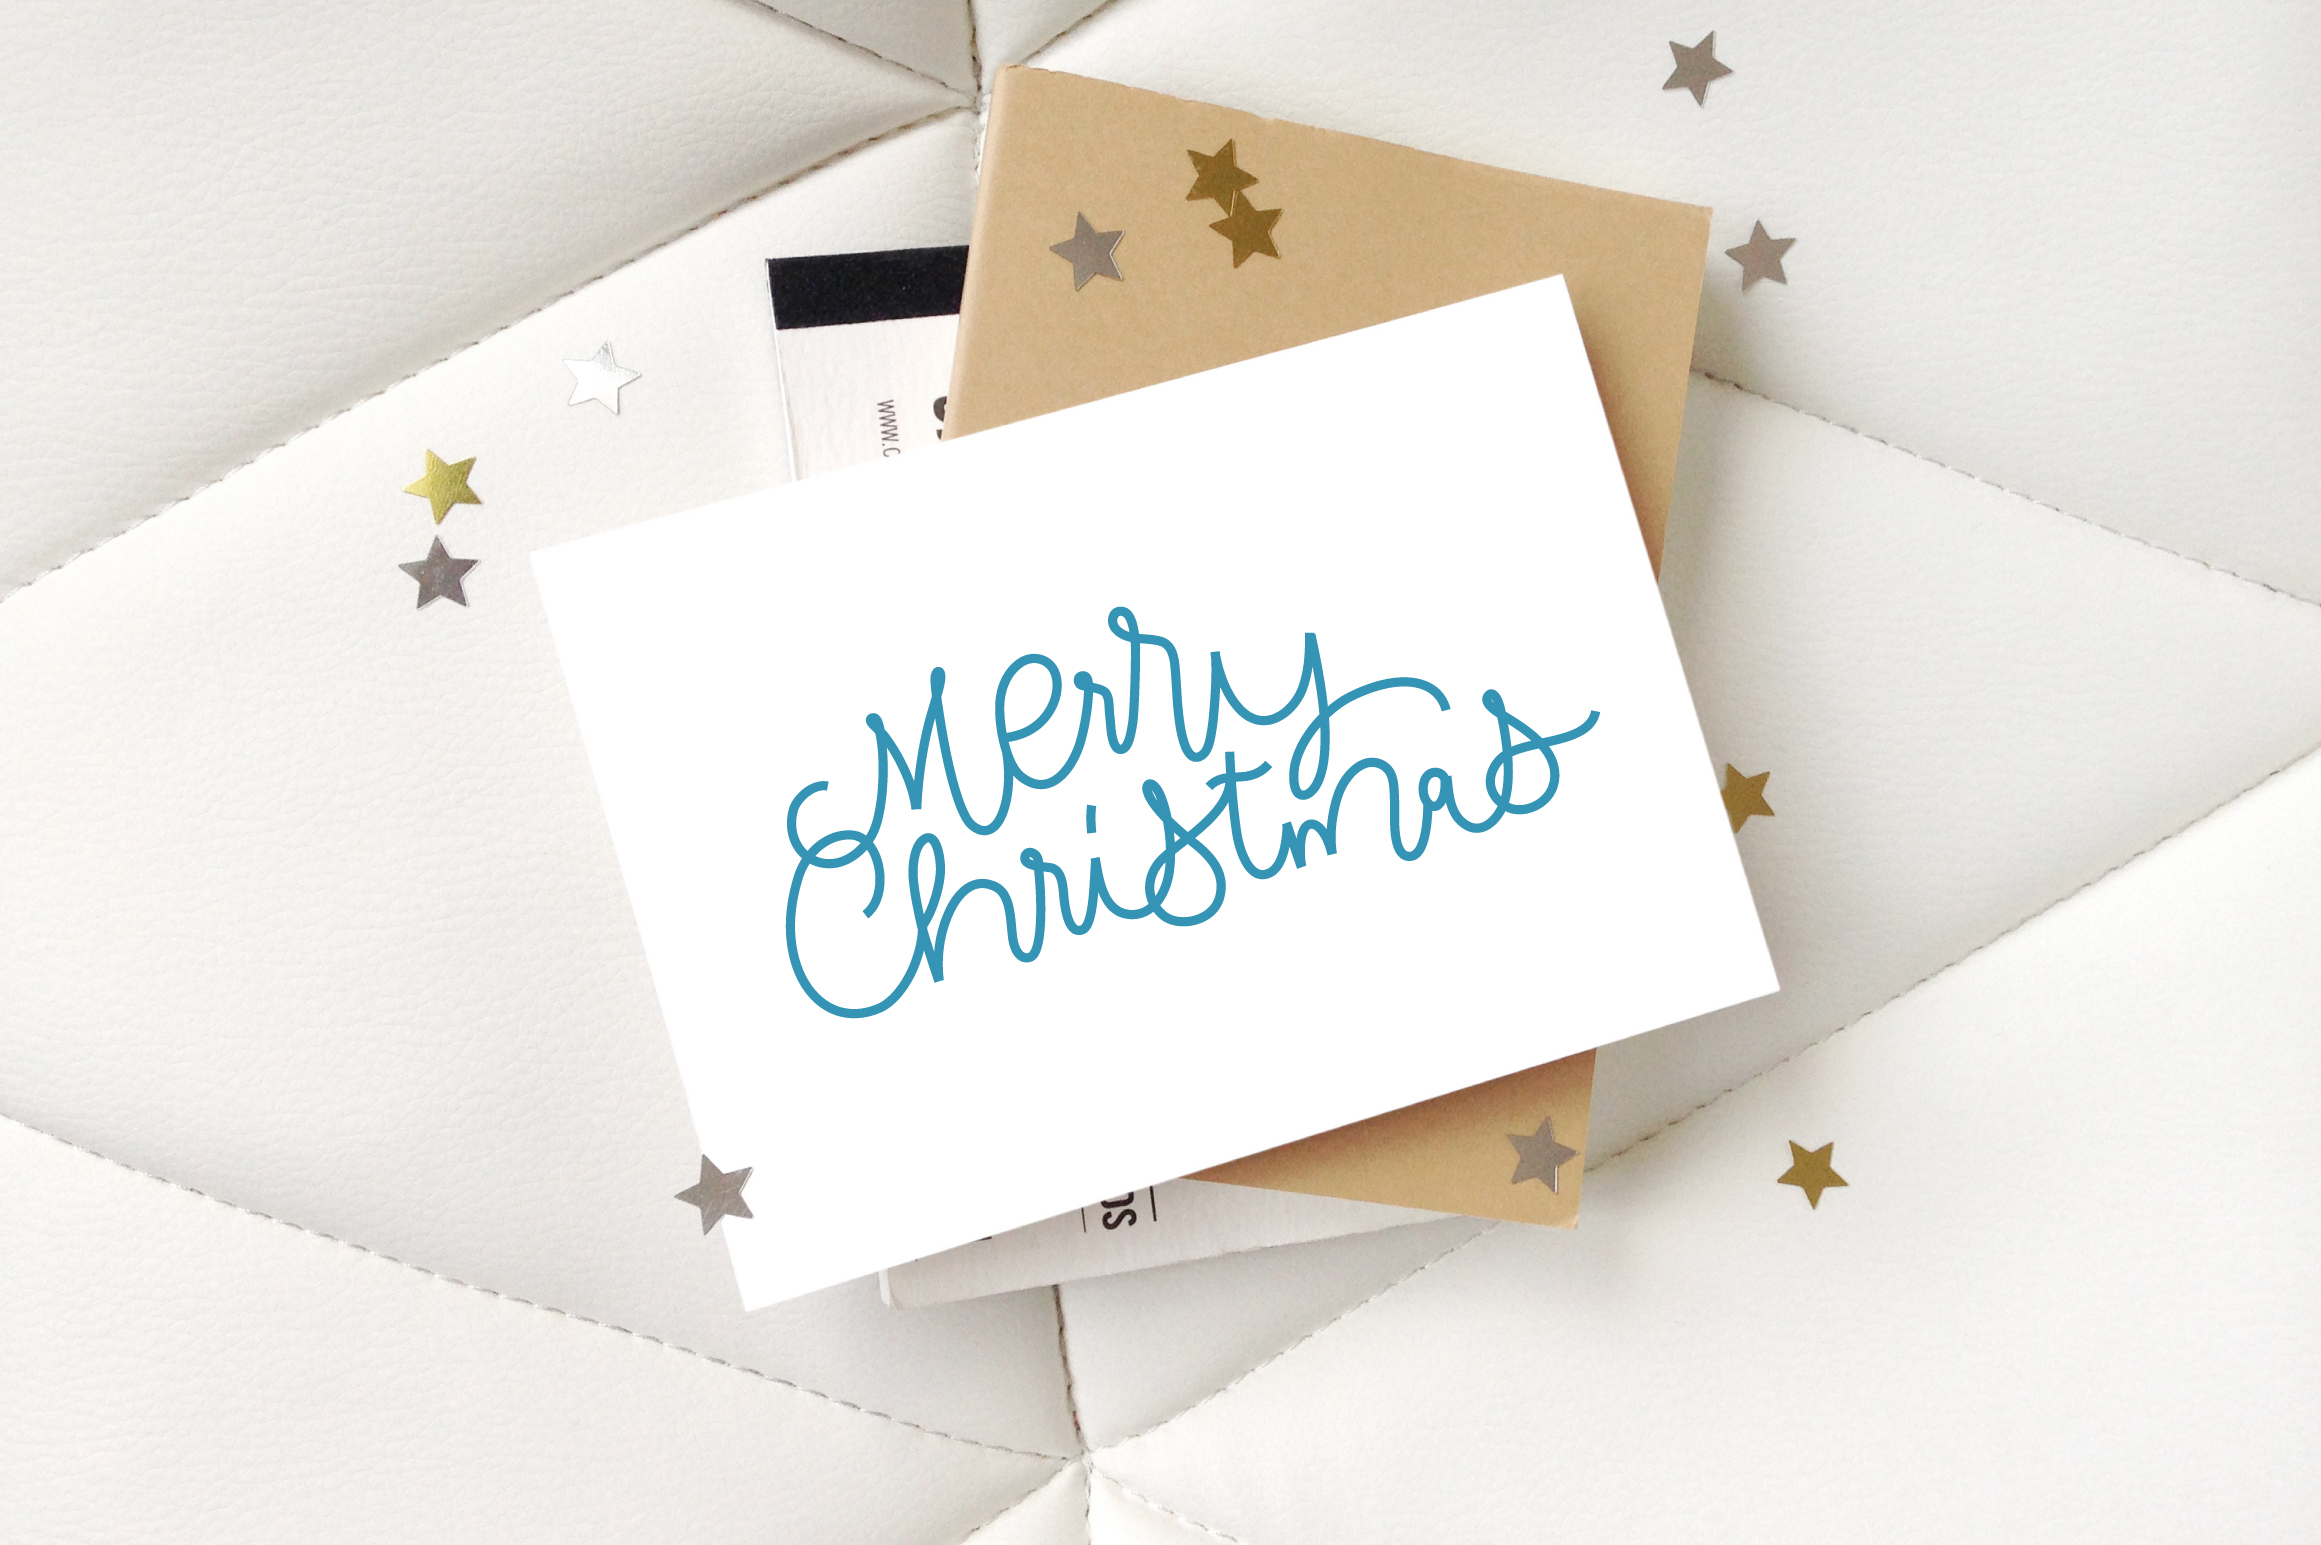 Merry Christmas small clipart example image 2